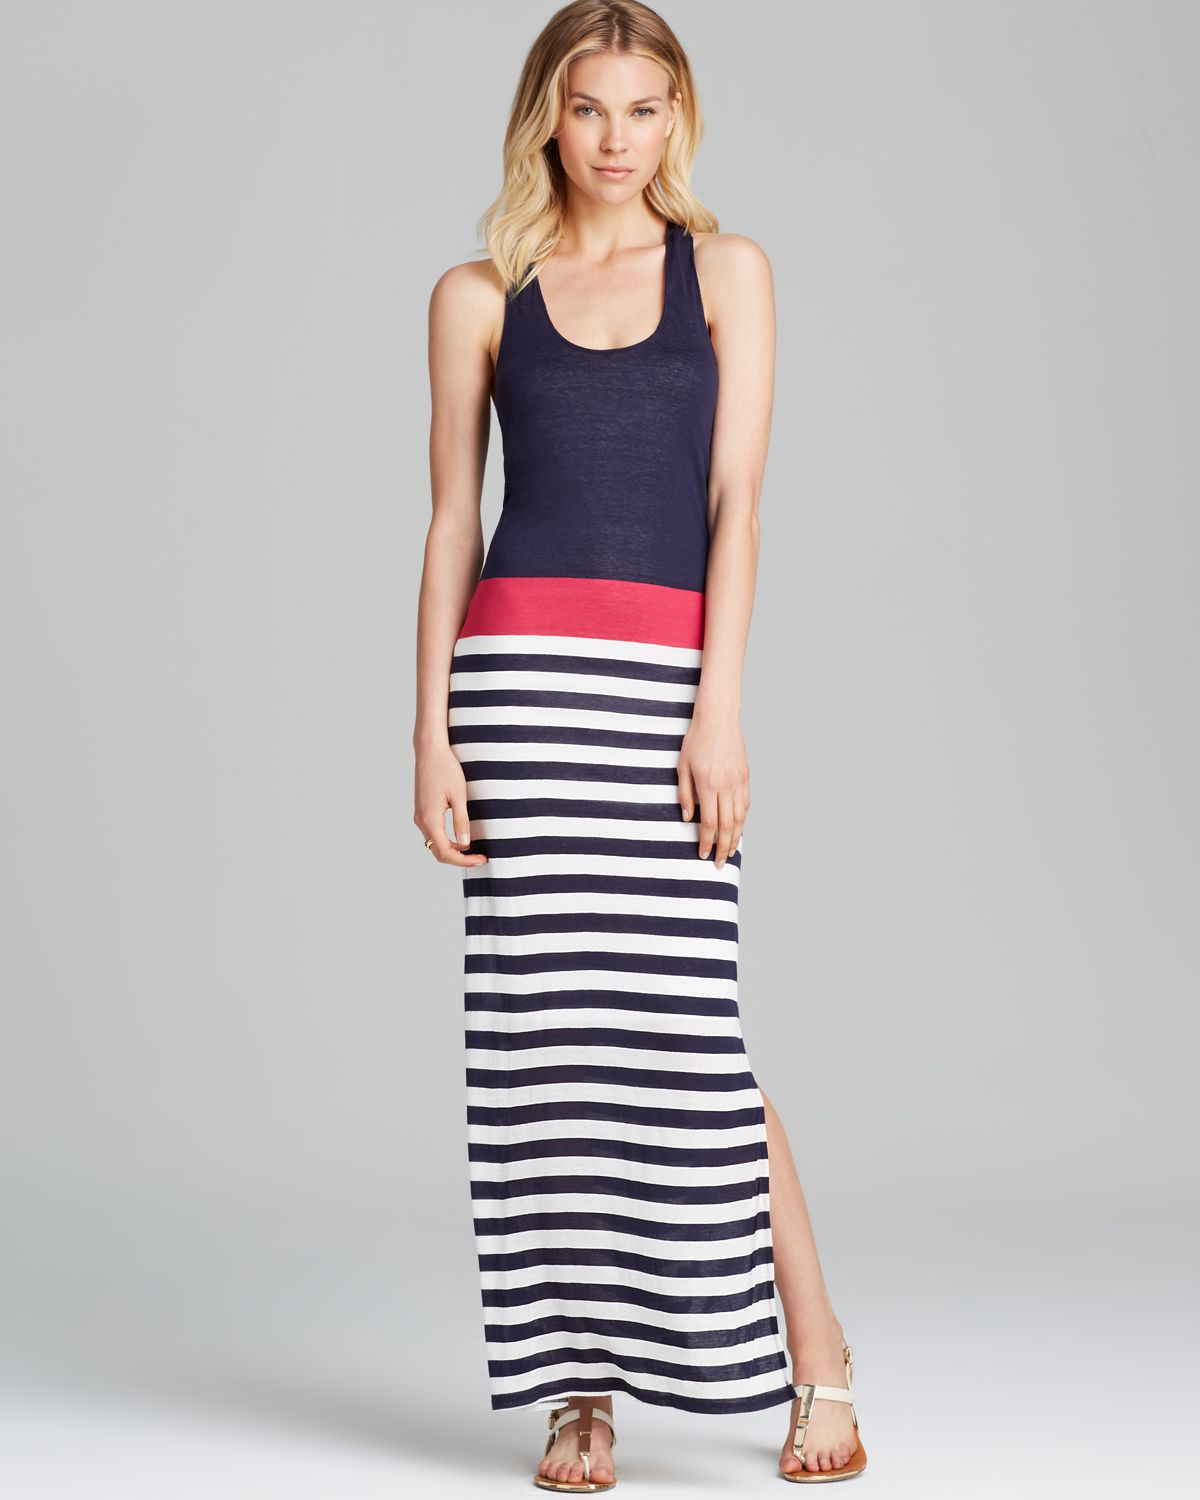 Red Haute Maxi Dress Striped Gathered Back In Pink Navy